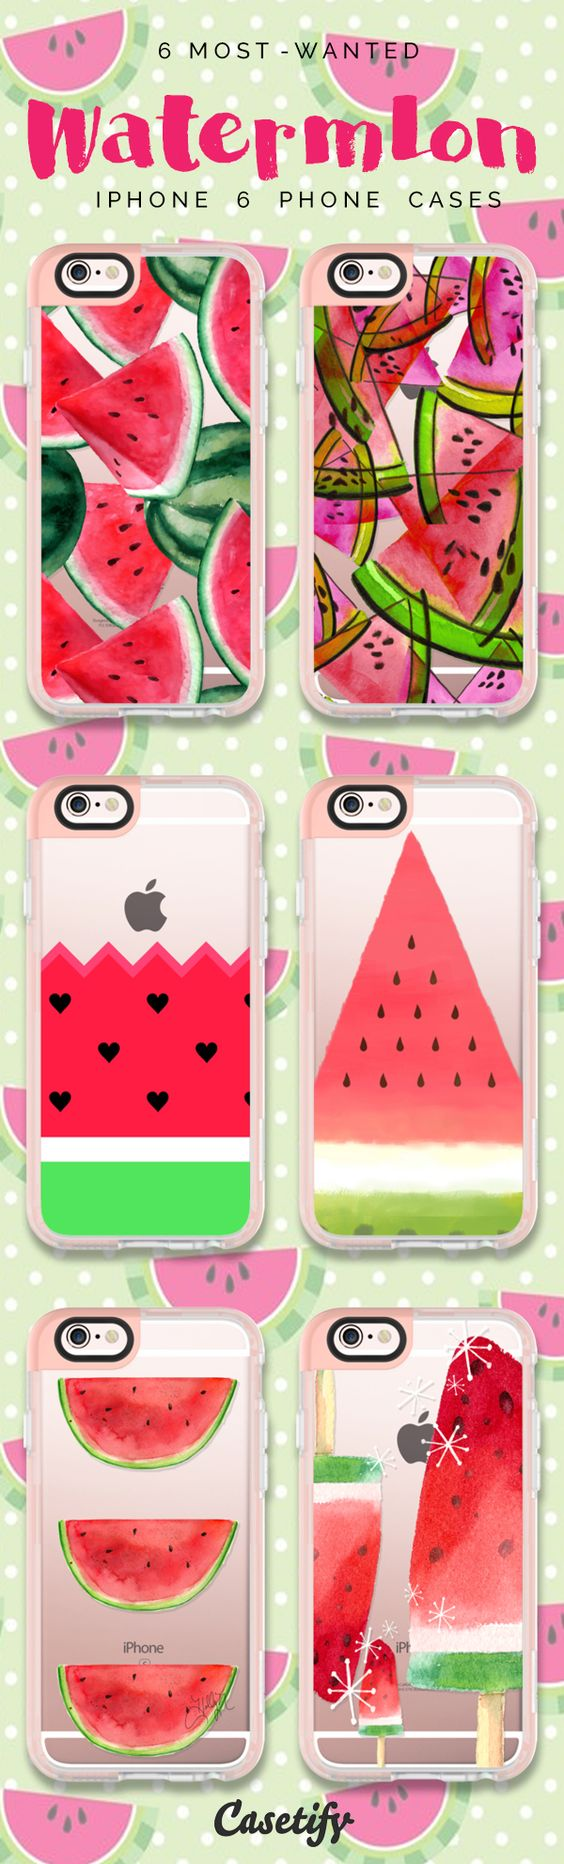 Top 6 Watermelon iPhone 6 protective phone case designs | Click through to see more iPhone phone case idea. Don't the seeds stop your from enjoying the watermelon! >>> https://www.casetify.com/collections/iphone-6s-swan-cases#/?device=iphone-6s | @casetify